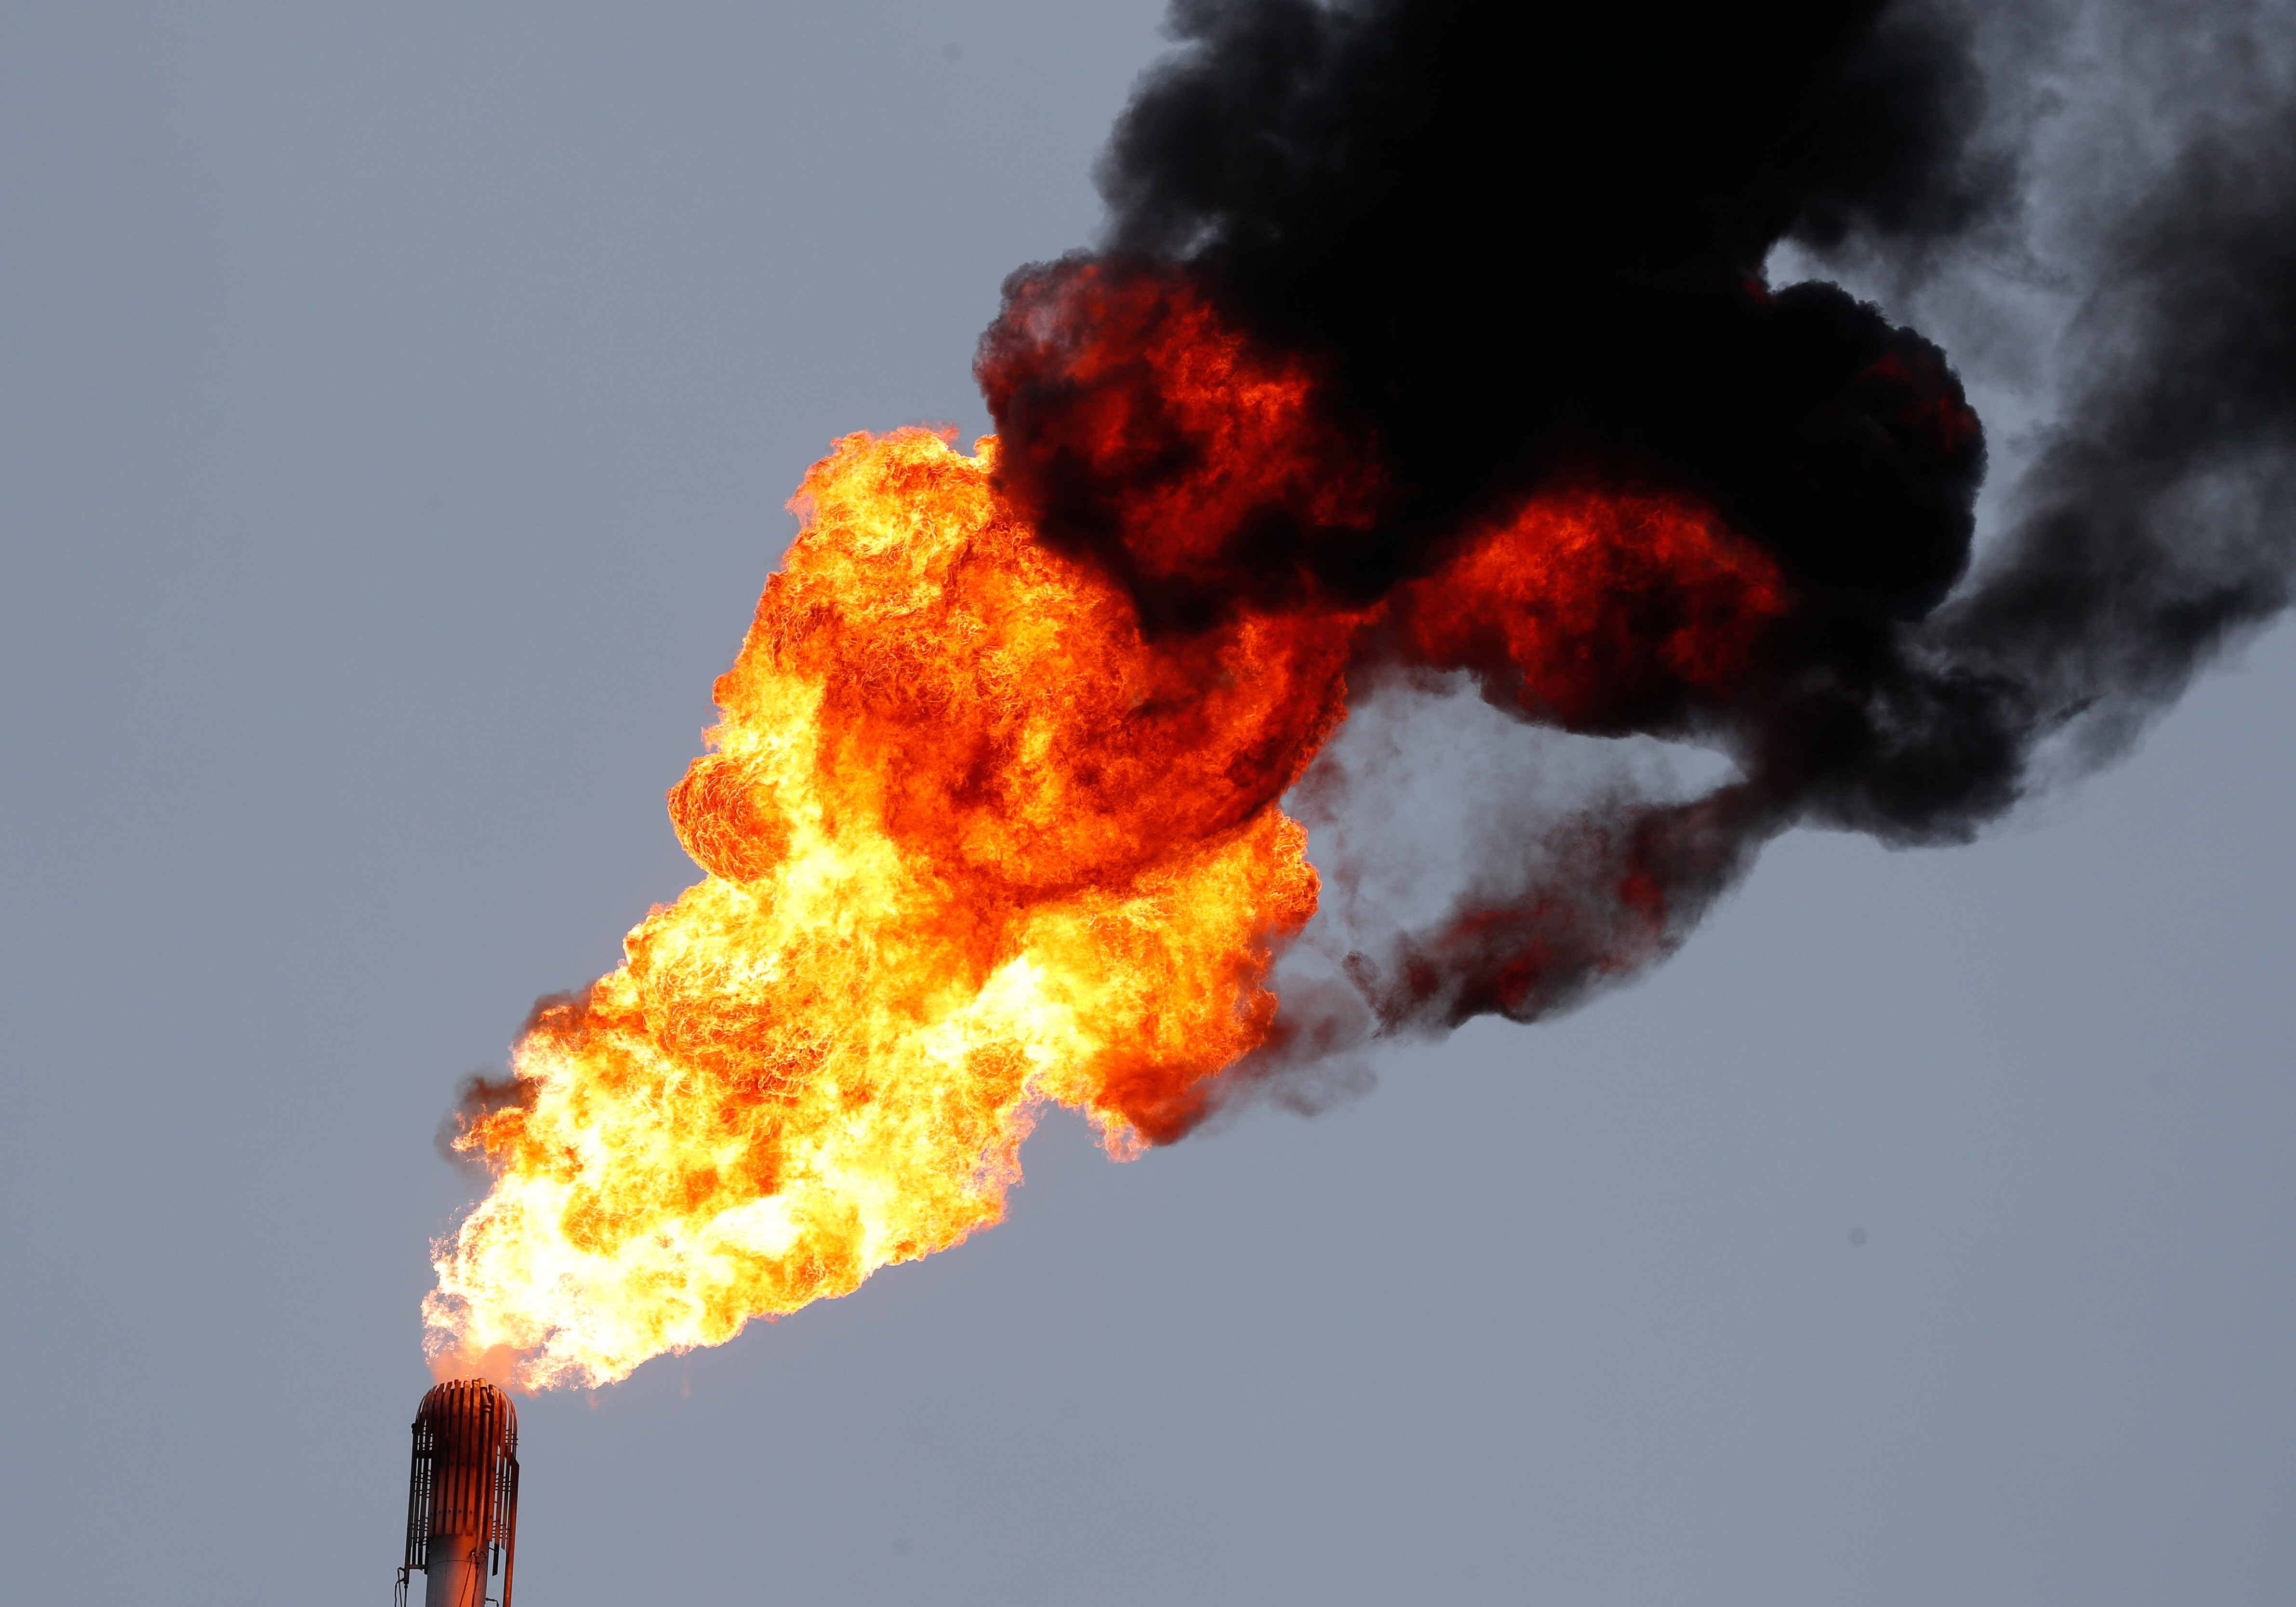 A flame burning natural gas is seen at the Joint stock company